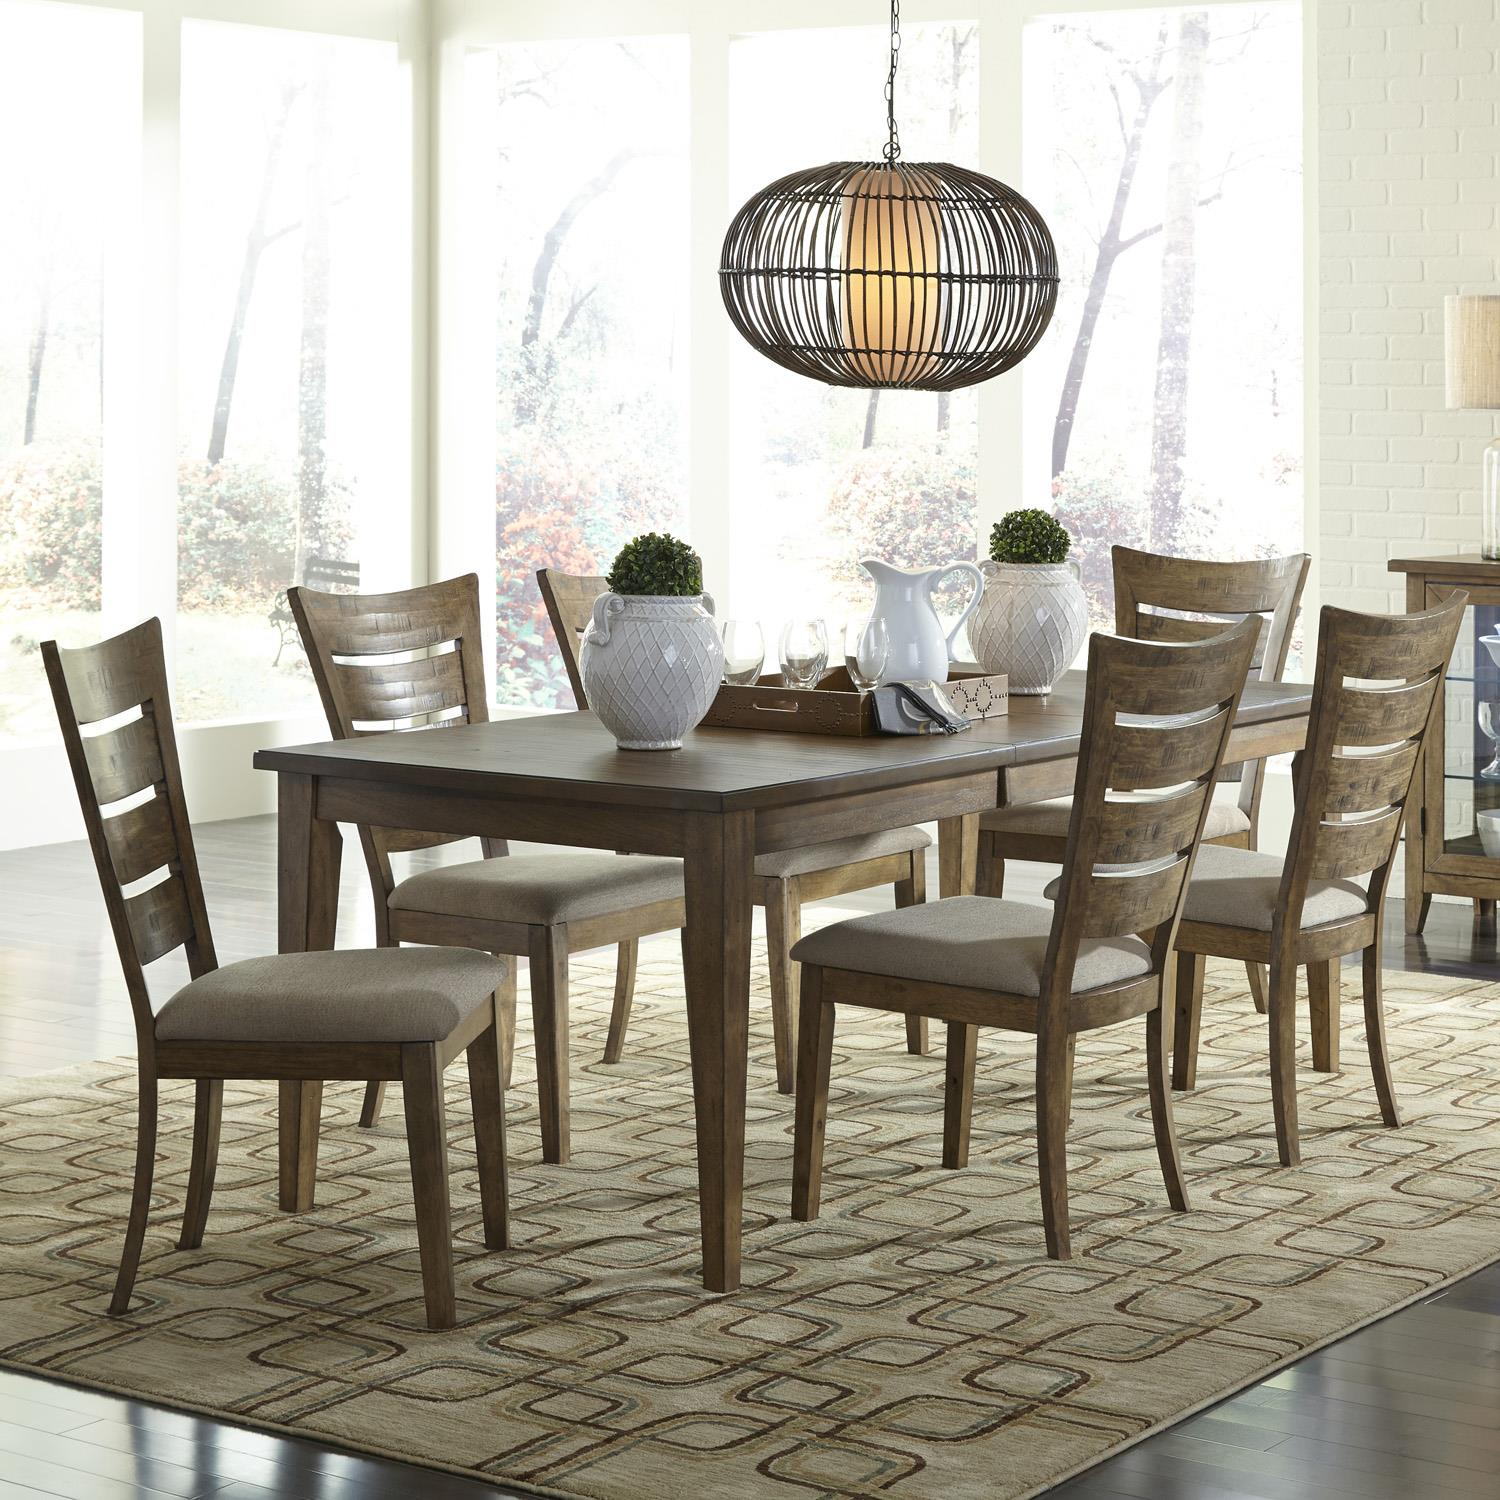 Pebble Creek 7 Piece Dining Set with Ladder Back Chairs by